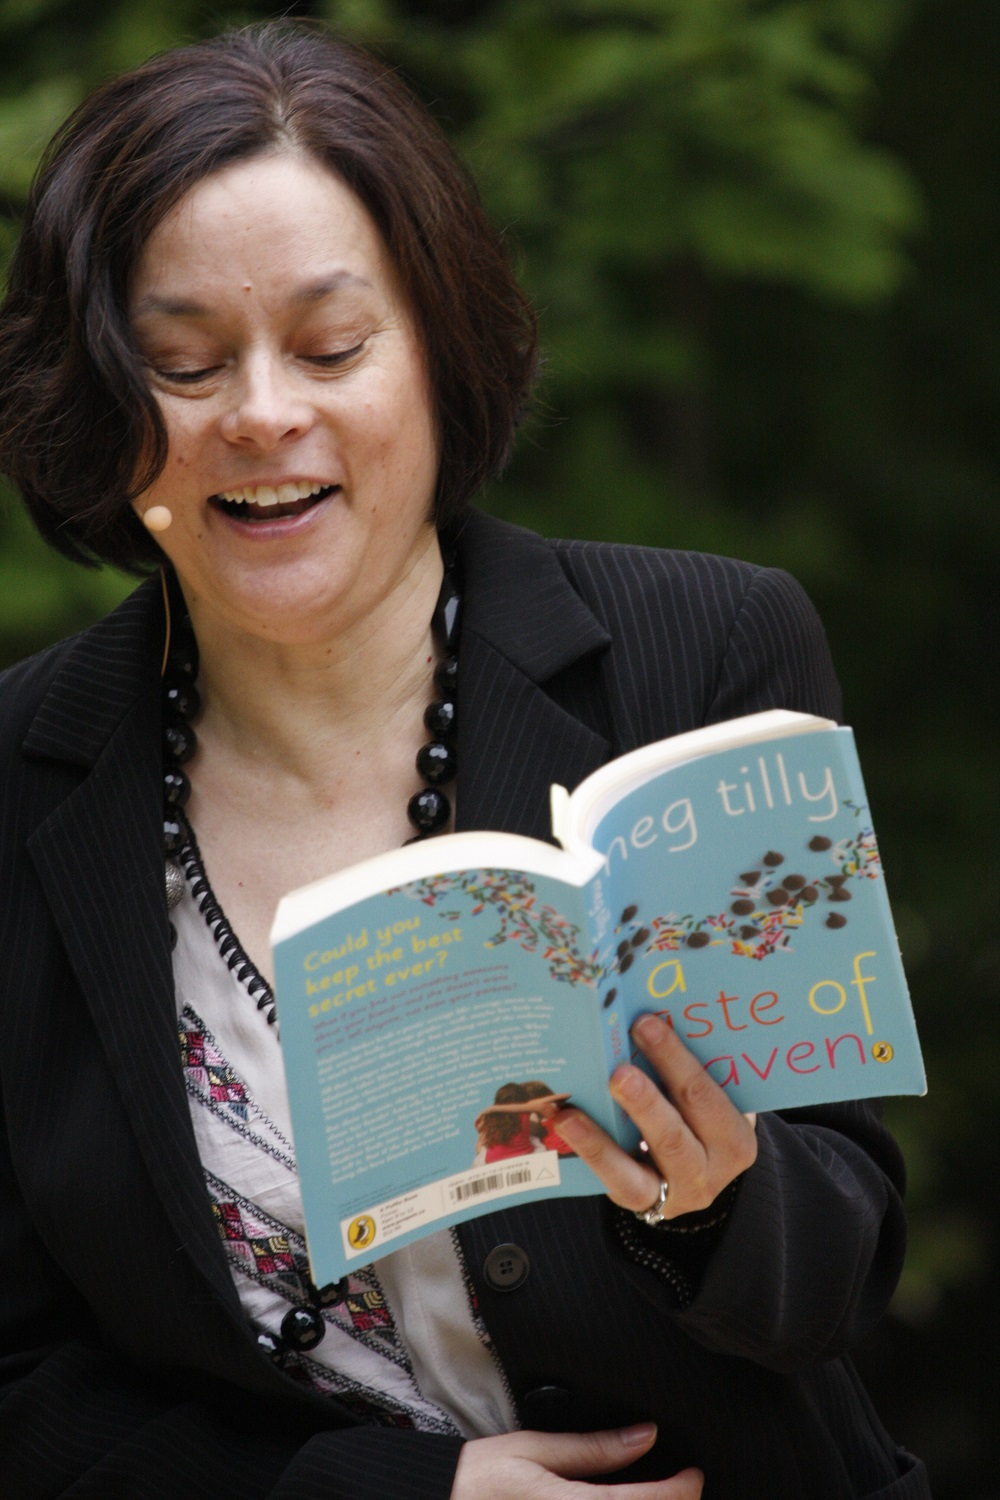 Meg Tilly reading from her book at the Telling Tales Festival